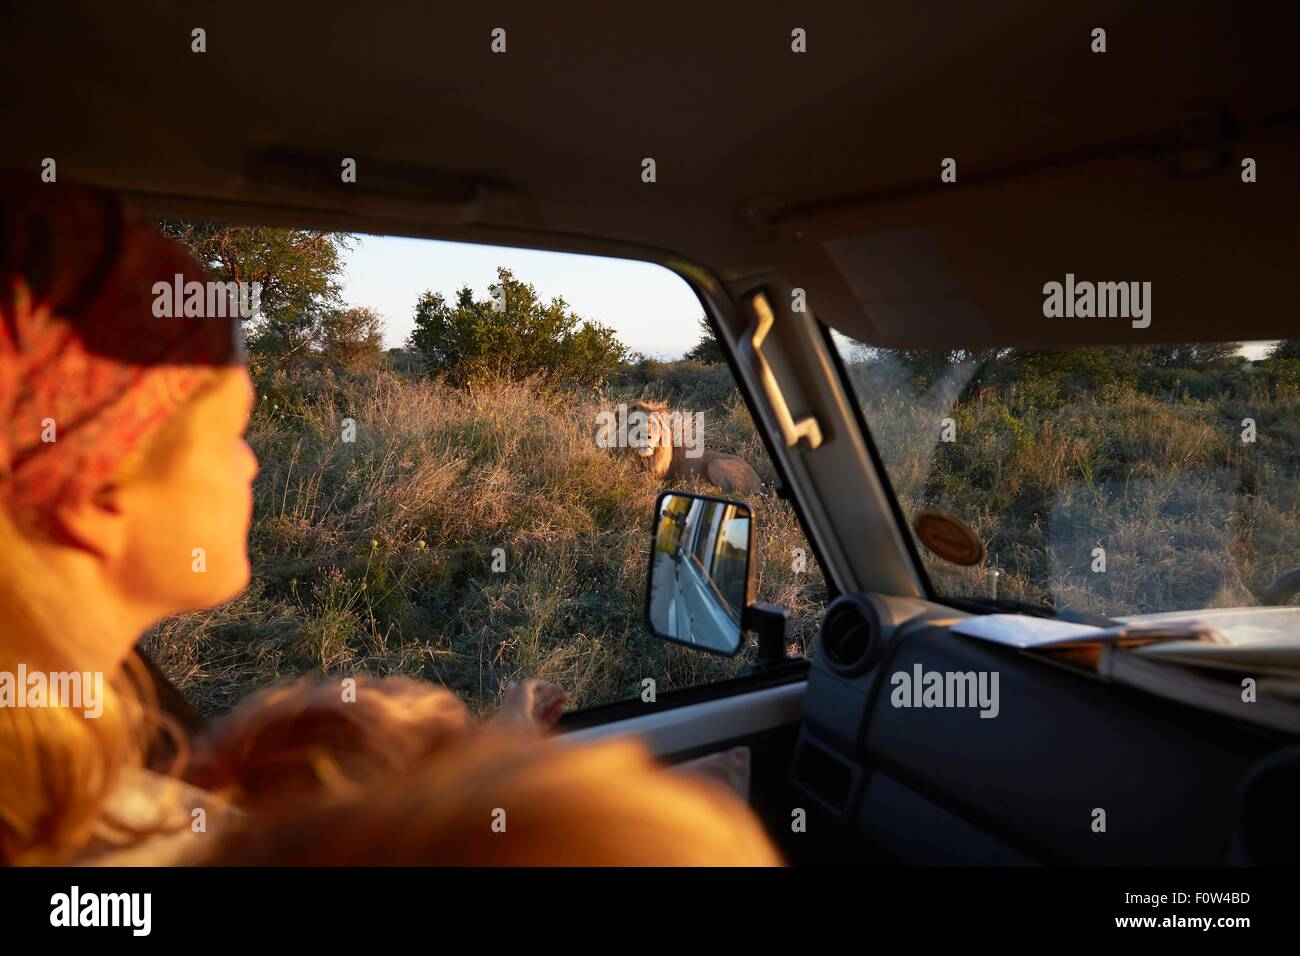 Woman travelling in vehicle, Nxai Pan National Park at sunset, Kalahari Desert, Africa - Stock Image